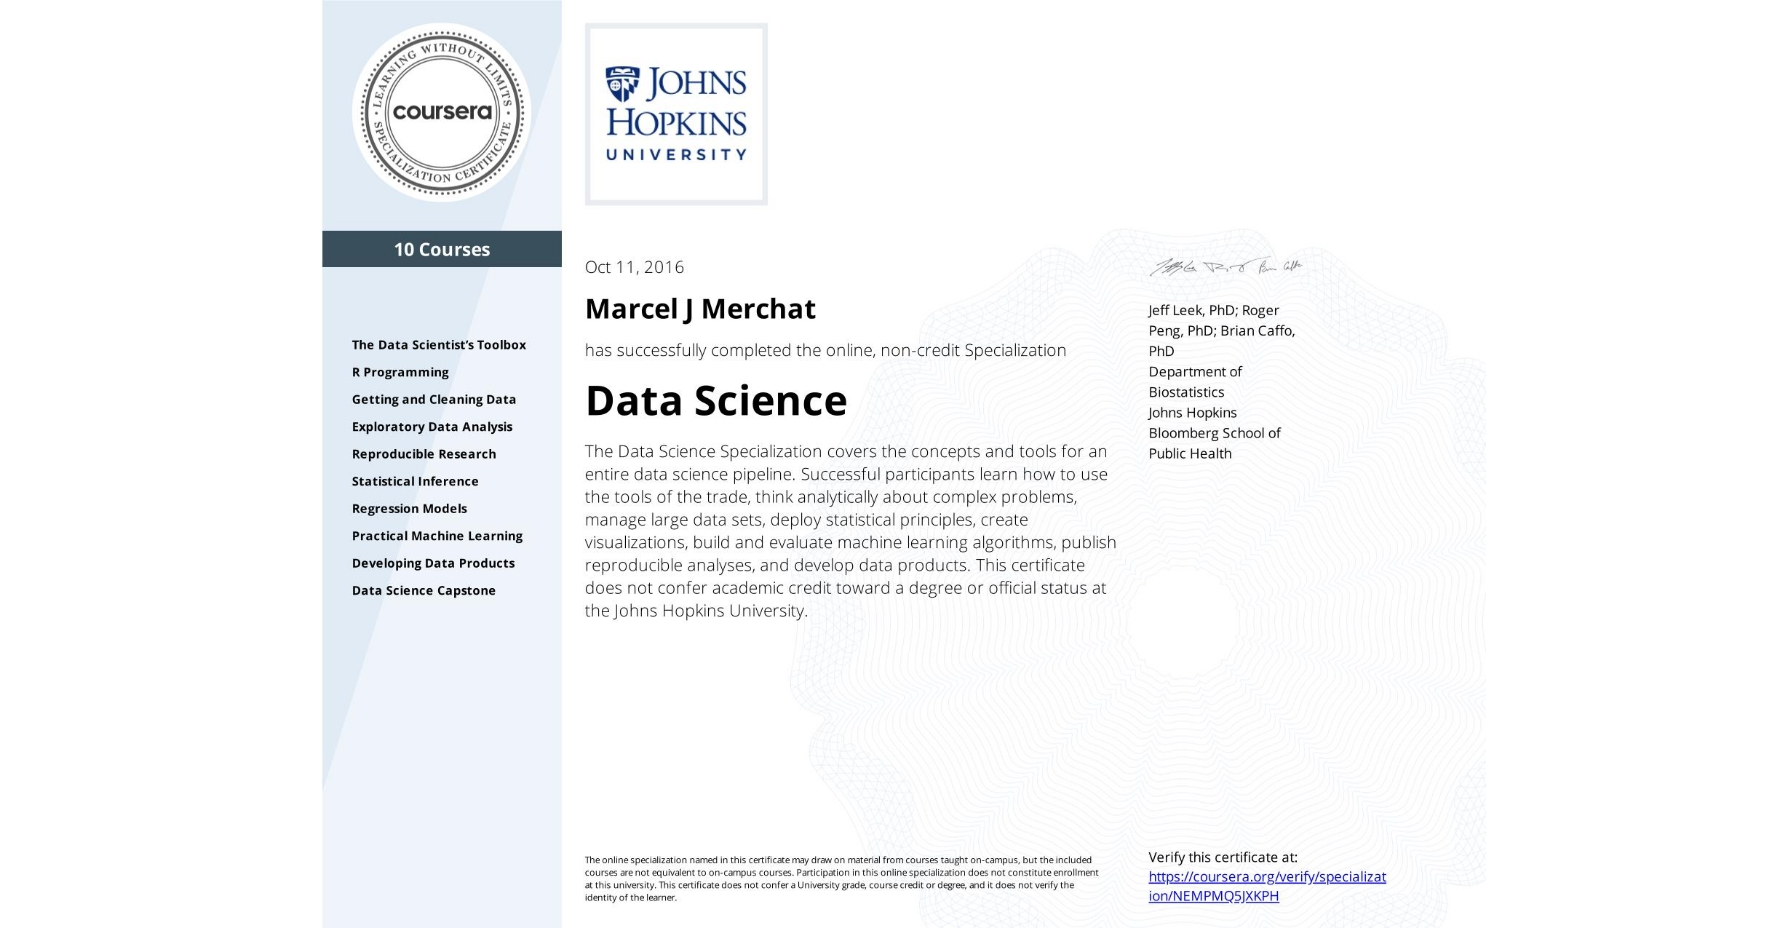 View certificate for Marcel J Merchat, Data Science, offered through Coursera. The Data Science Specialization covers the concepts and tools for an entire data science pipeline. Successful participants learn how to use the tools of the trade, think analytically about complex problems, manage large data sets, deploy statistical principles, create visualizations, build and evaluate machine learning algorithms, publish reproducible analyses, and develop data products.    This certificate does not confer academic credit toward a degree or official status at the Johns Hopkins University.